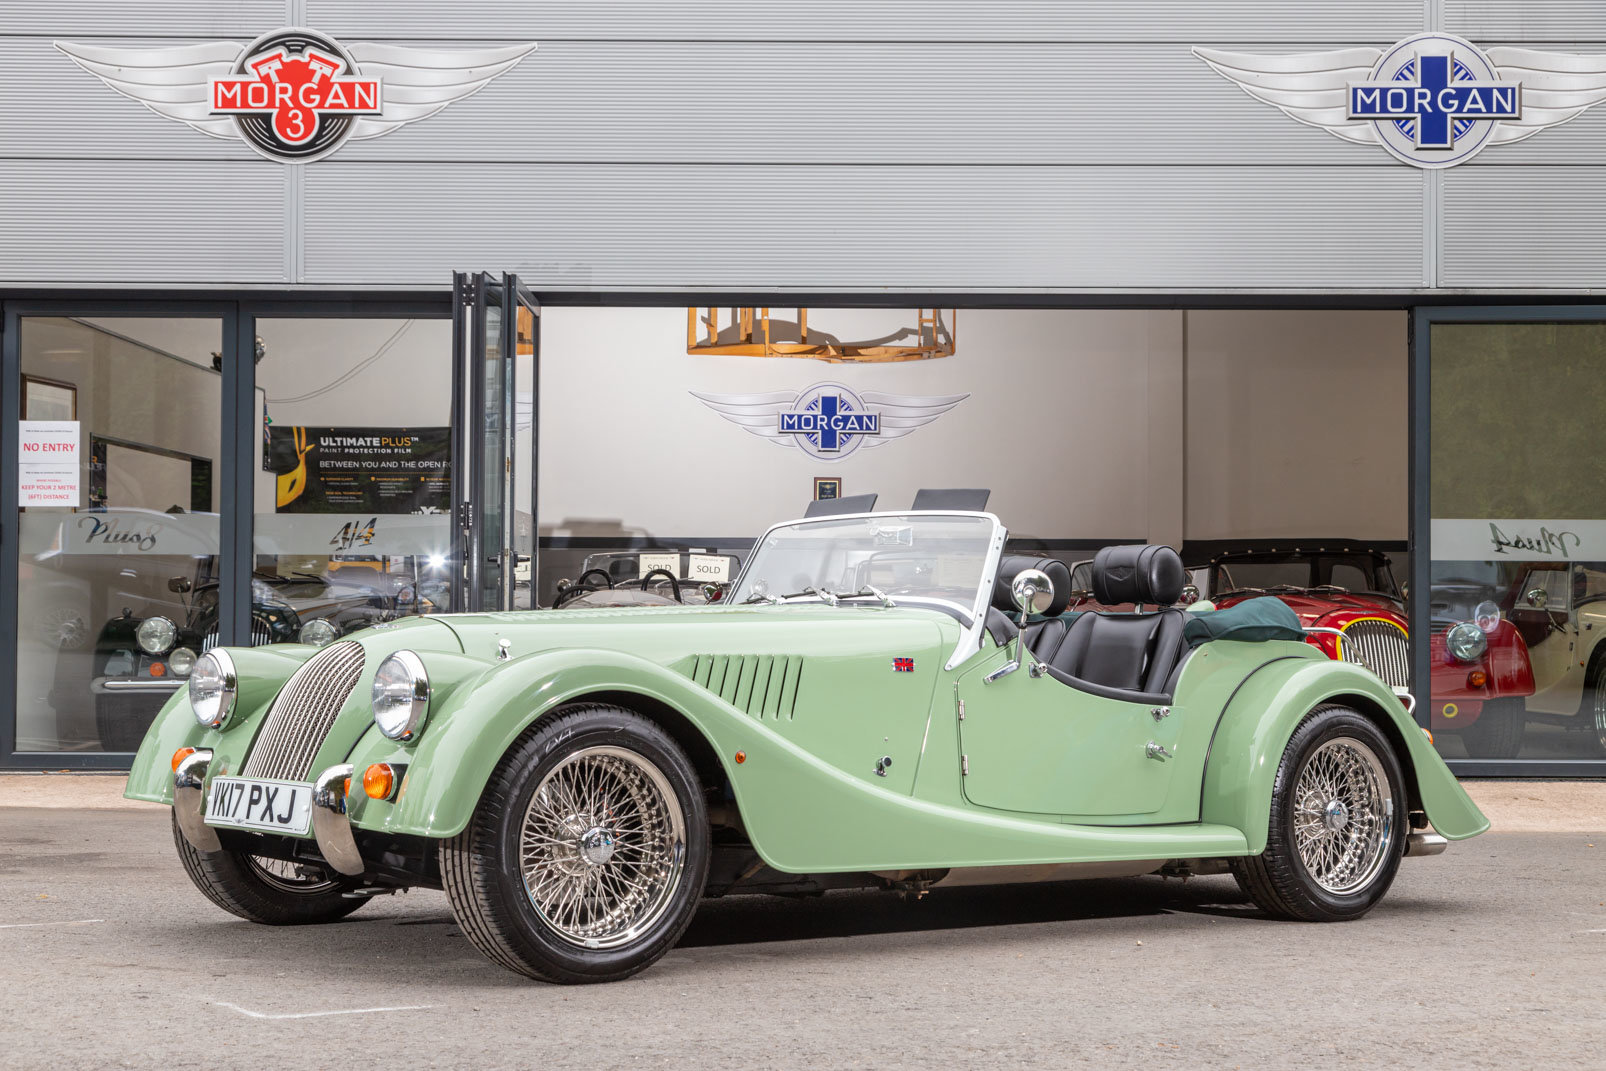 2017 Morgan Roadster 3.7 Ford Cyclone For Sale (picture 1 of 6)